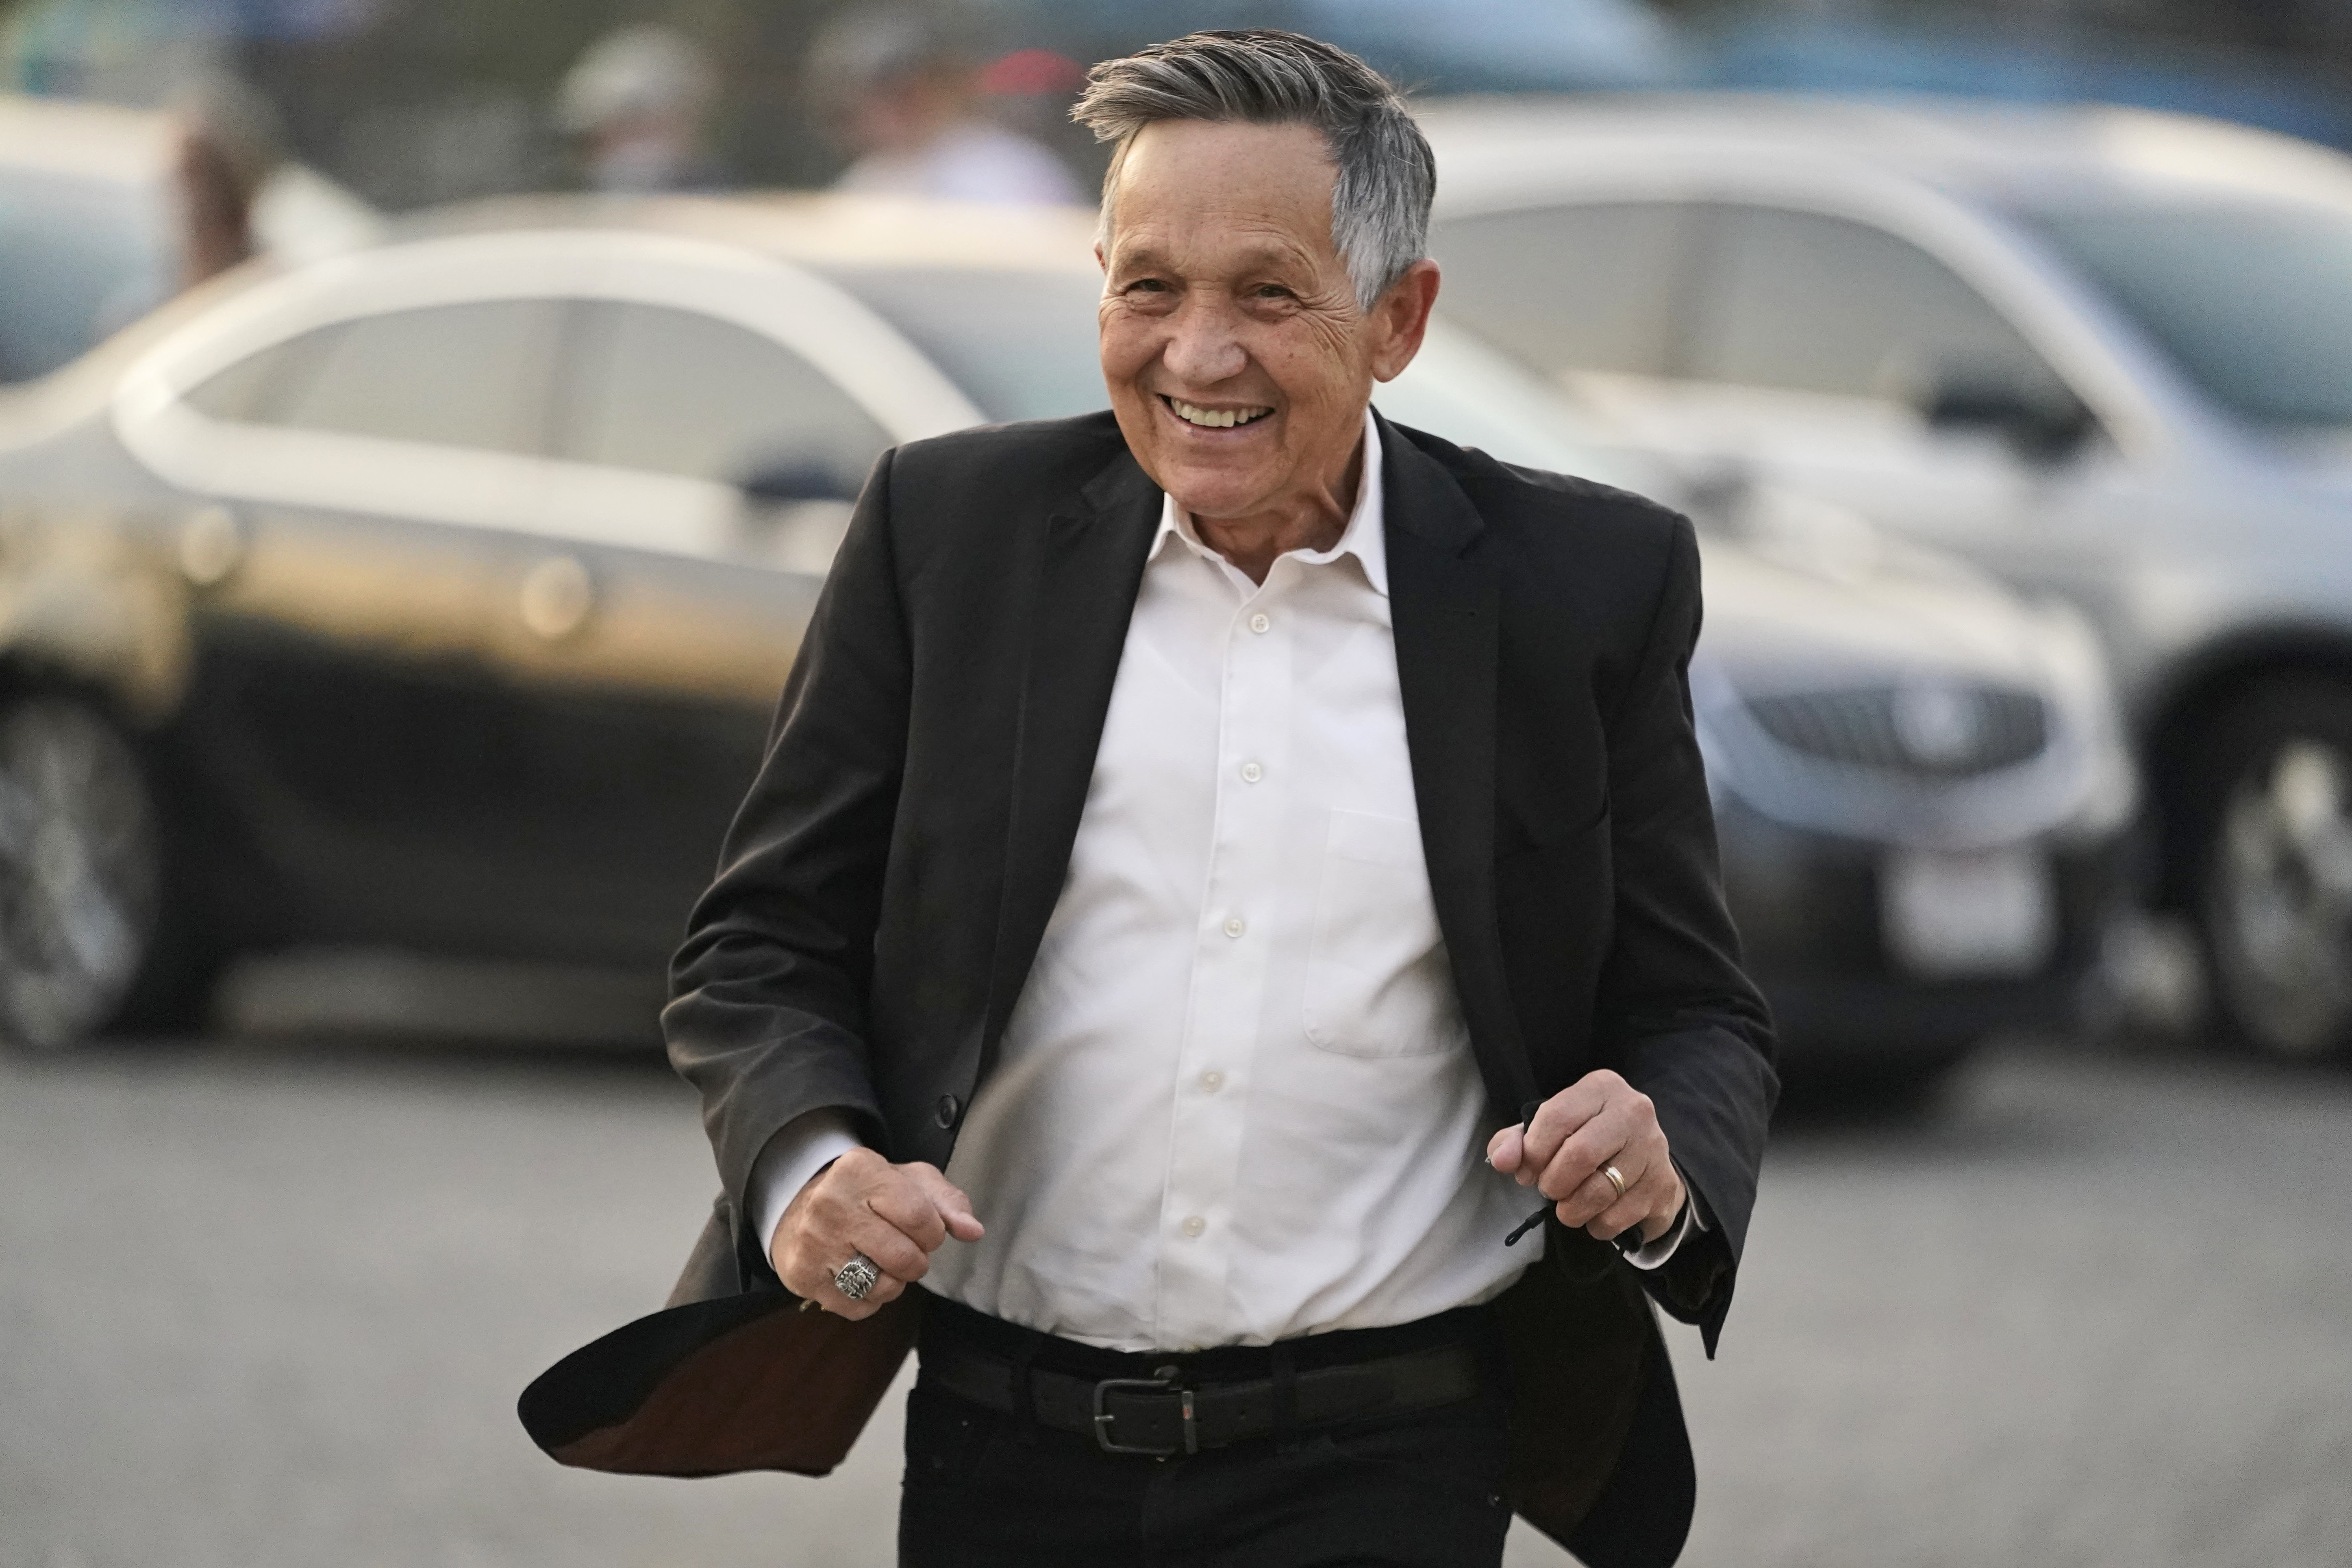 Dennis Kucinich falls short in bid to return to mayor's office in Cleveland four decades later